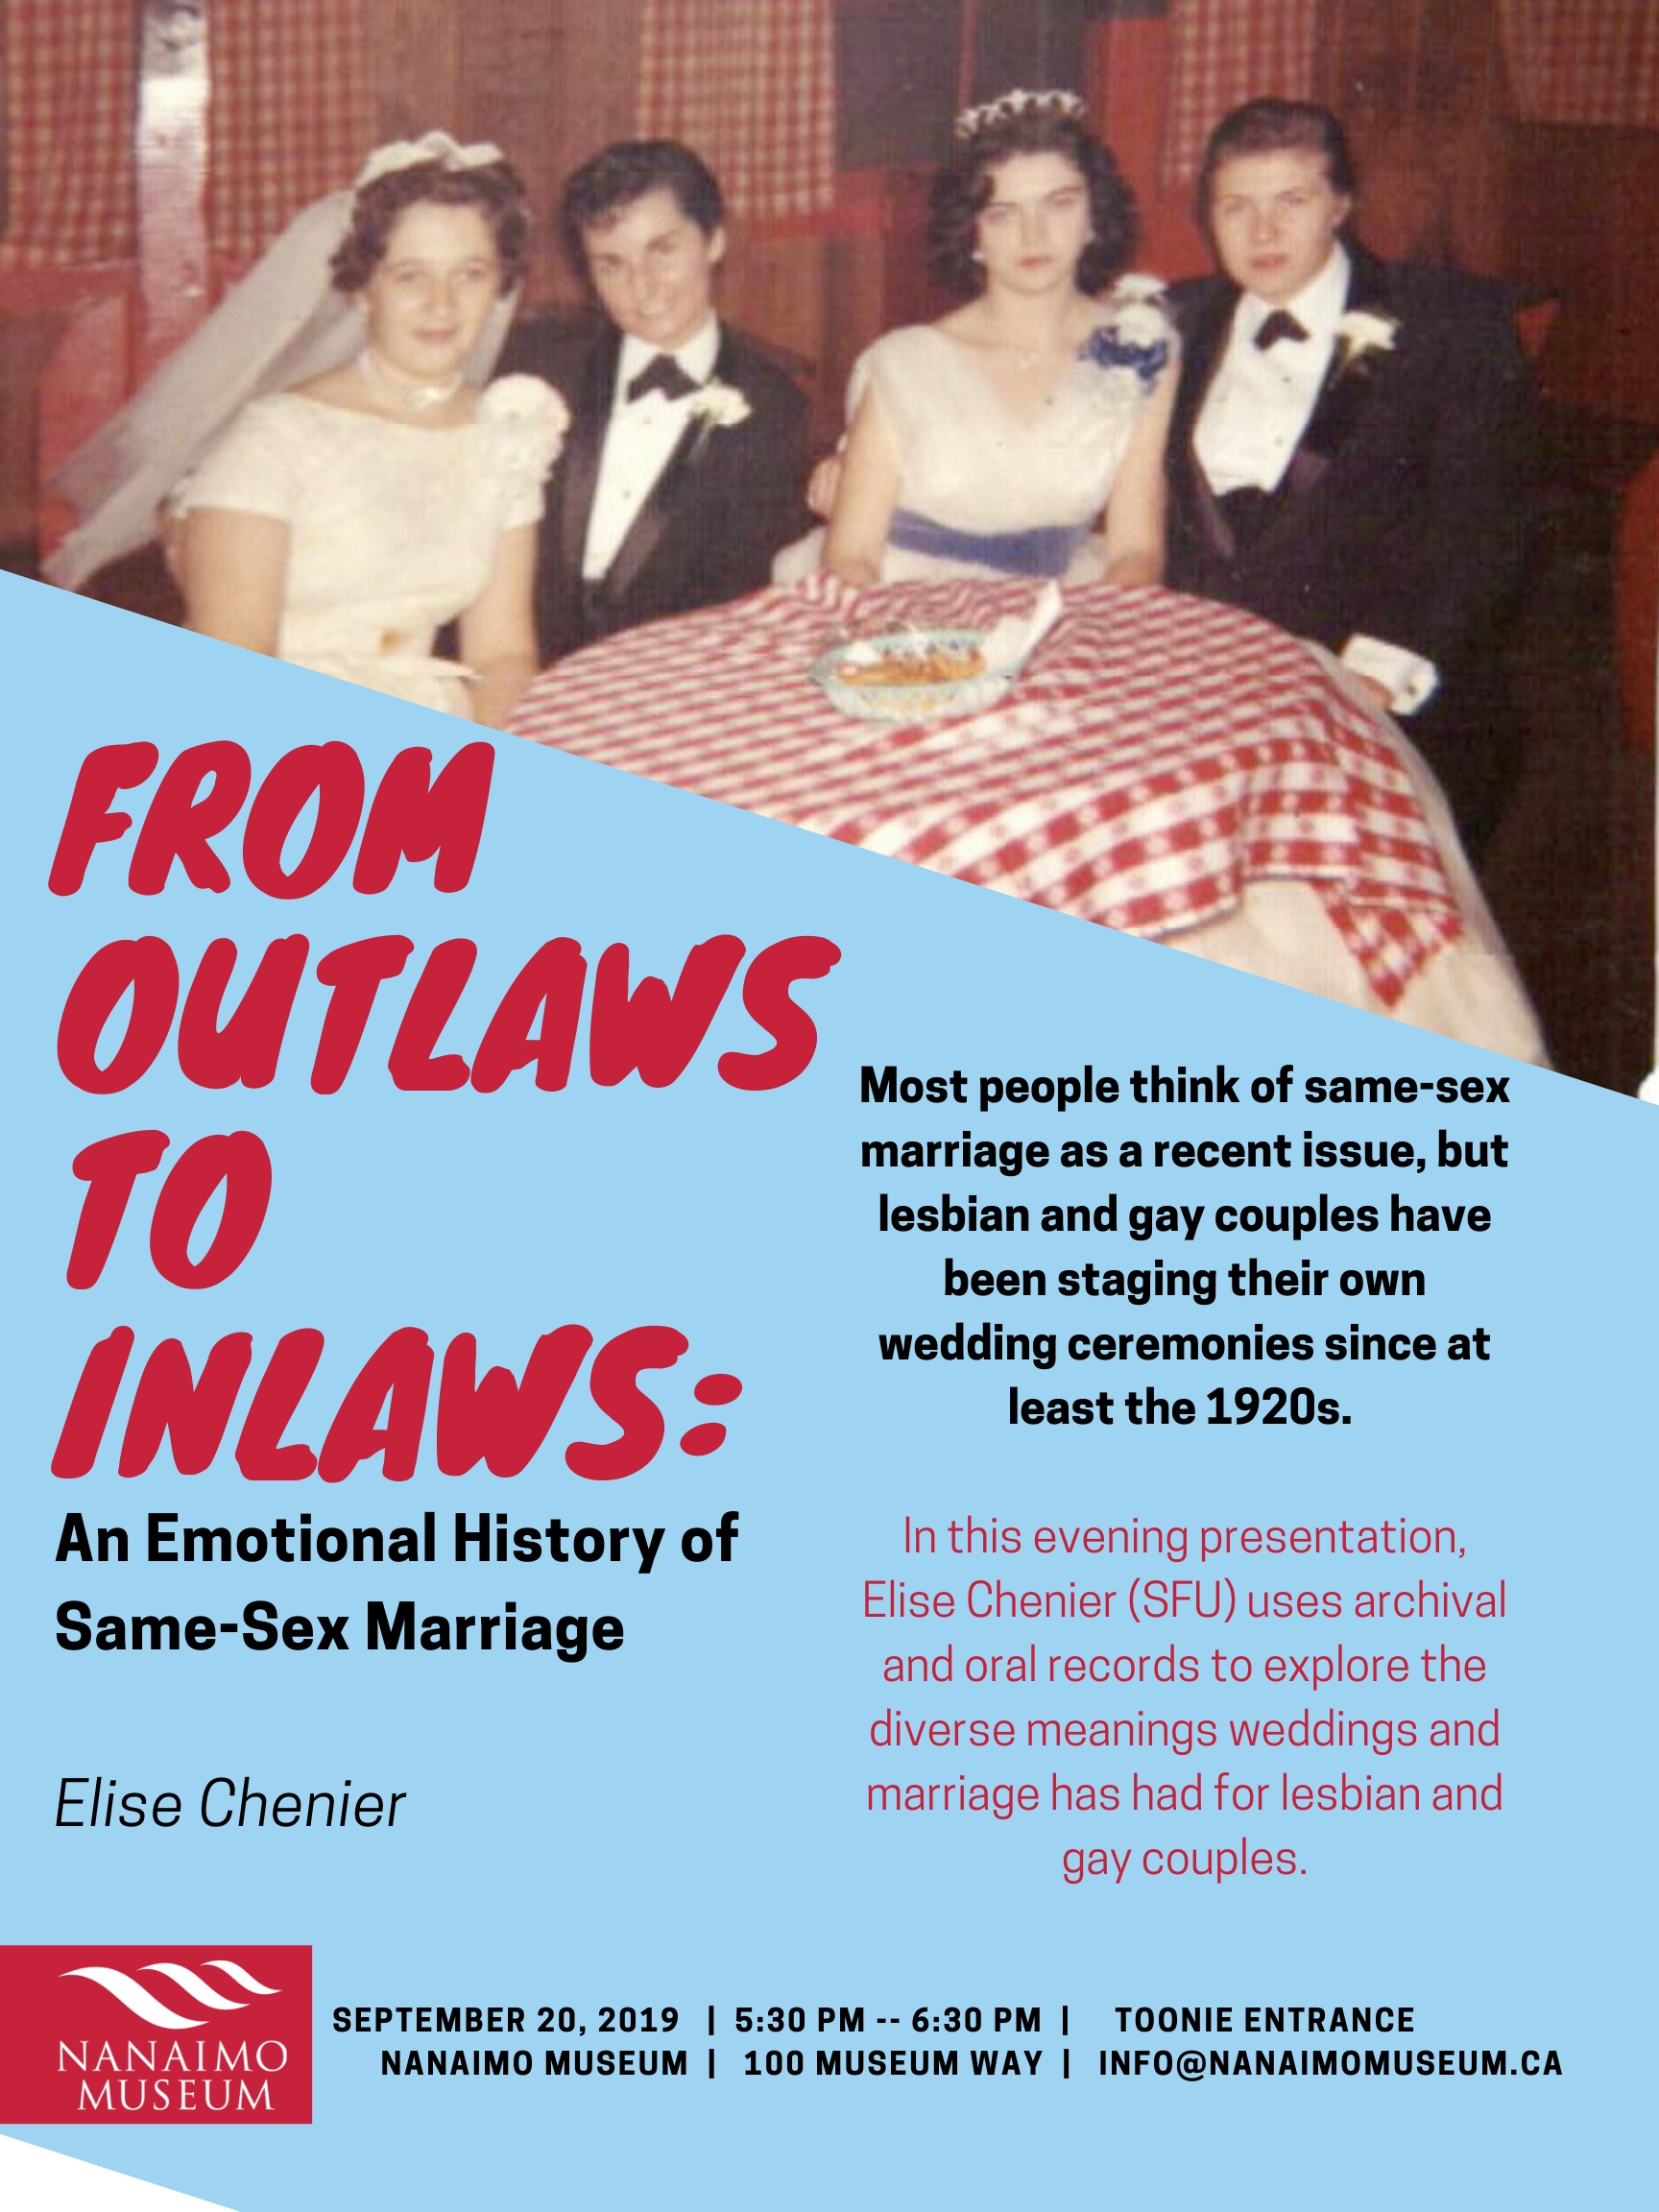 Presentation: From Outlaws to Inlaws: An Emotional History of Same-Sex Marriage